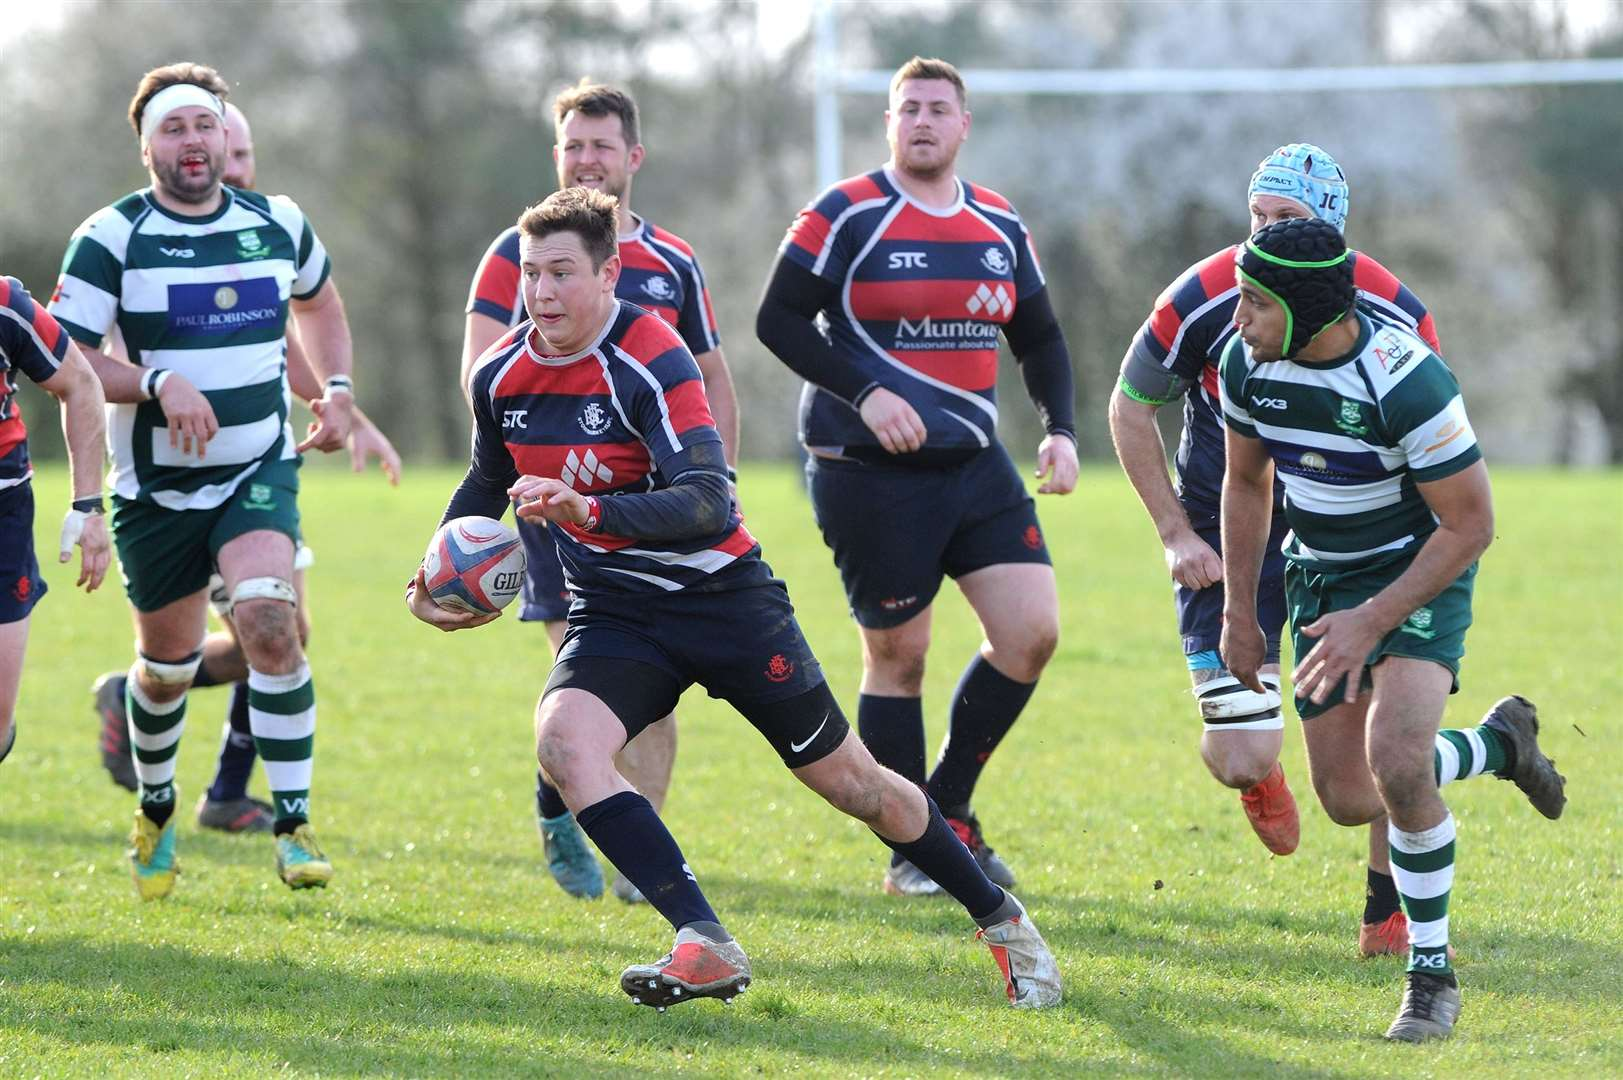 Brad Durrant scored the try of the game for Stowmarket in Saturday's win over Basildon	Picture: Mecha Morton